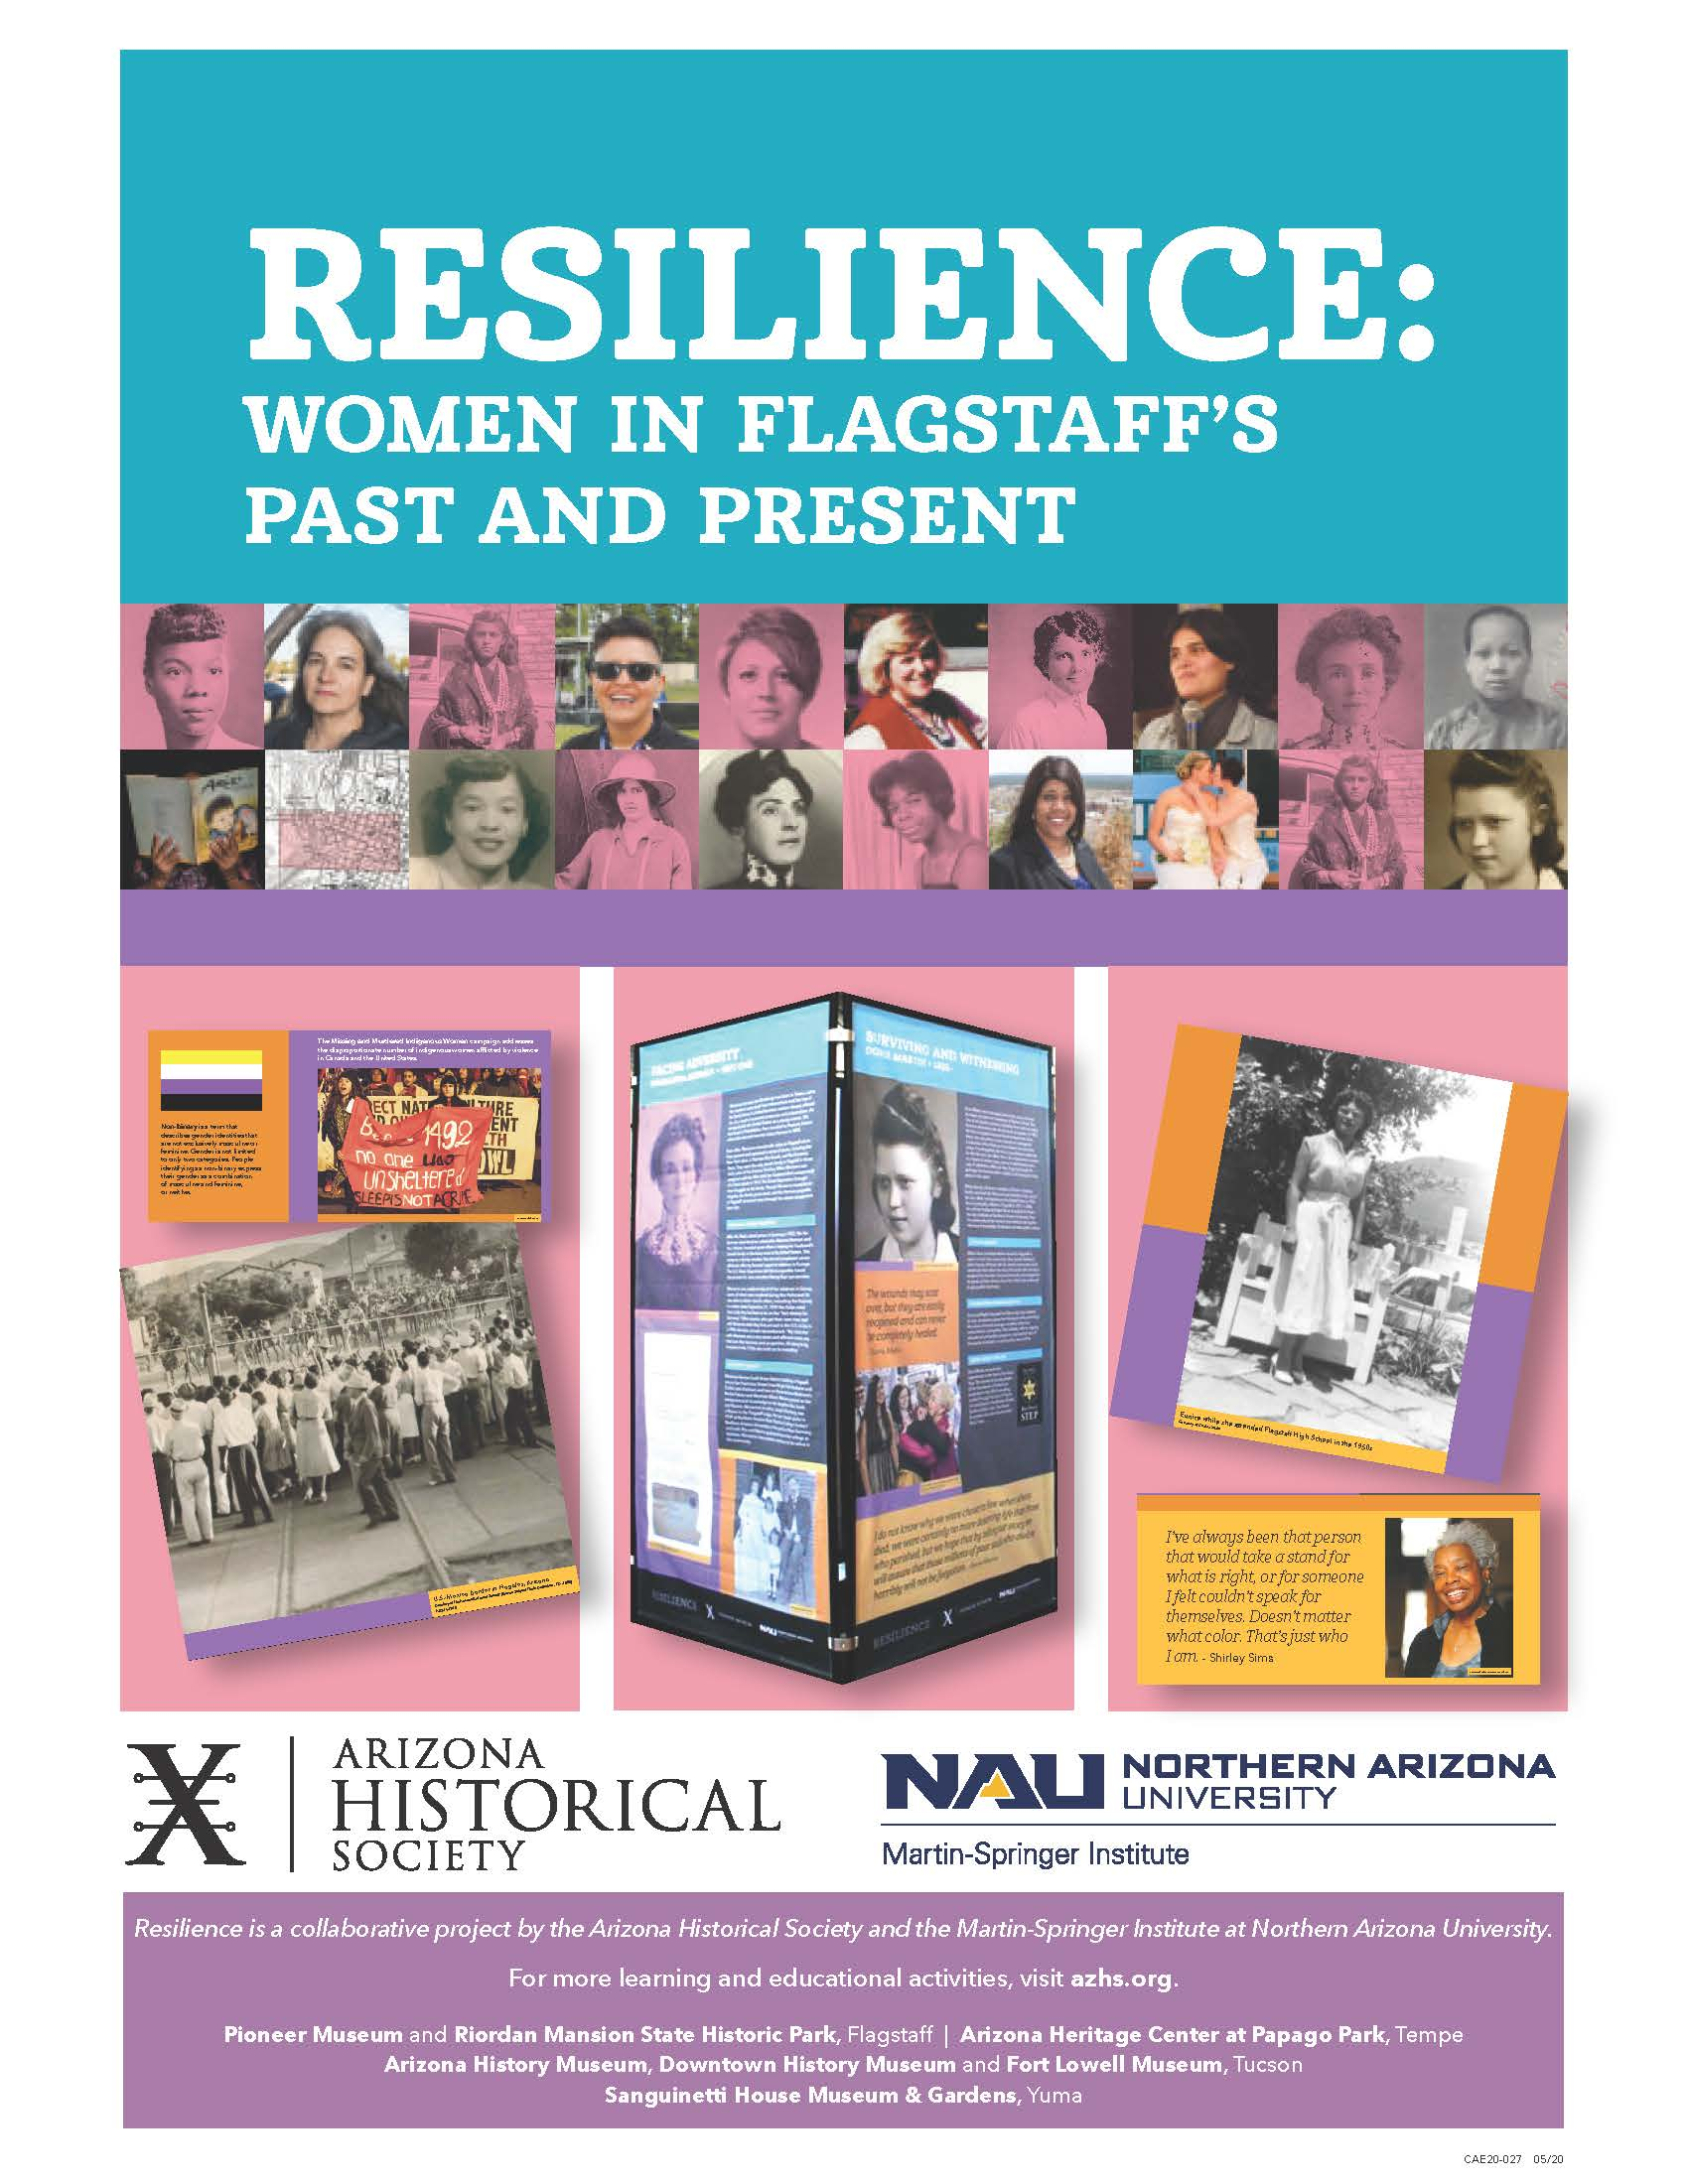 Resilience: Women in Flagstaff's Past and Present Curriculum Guide